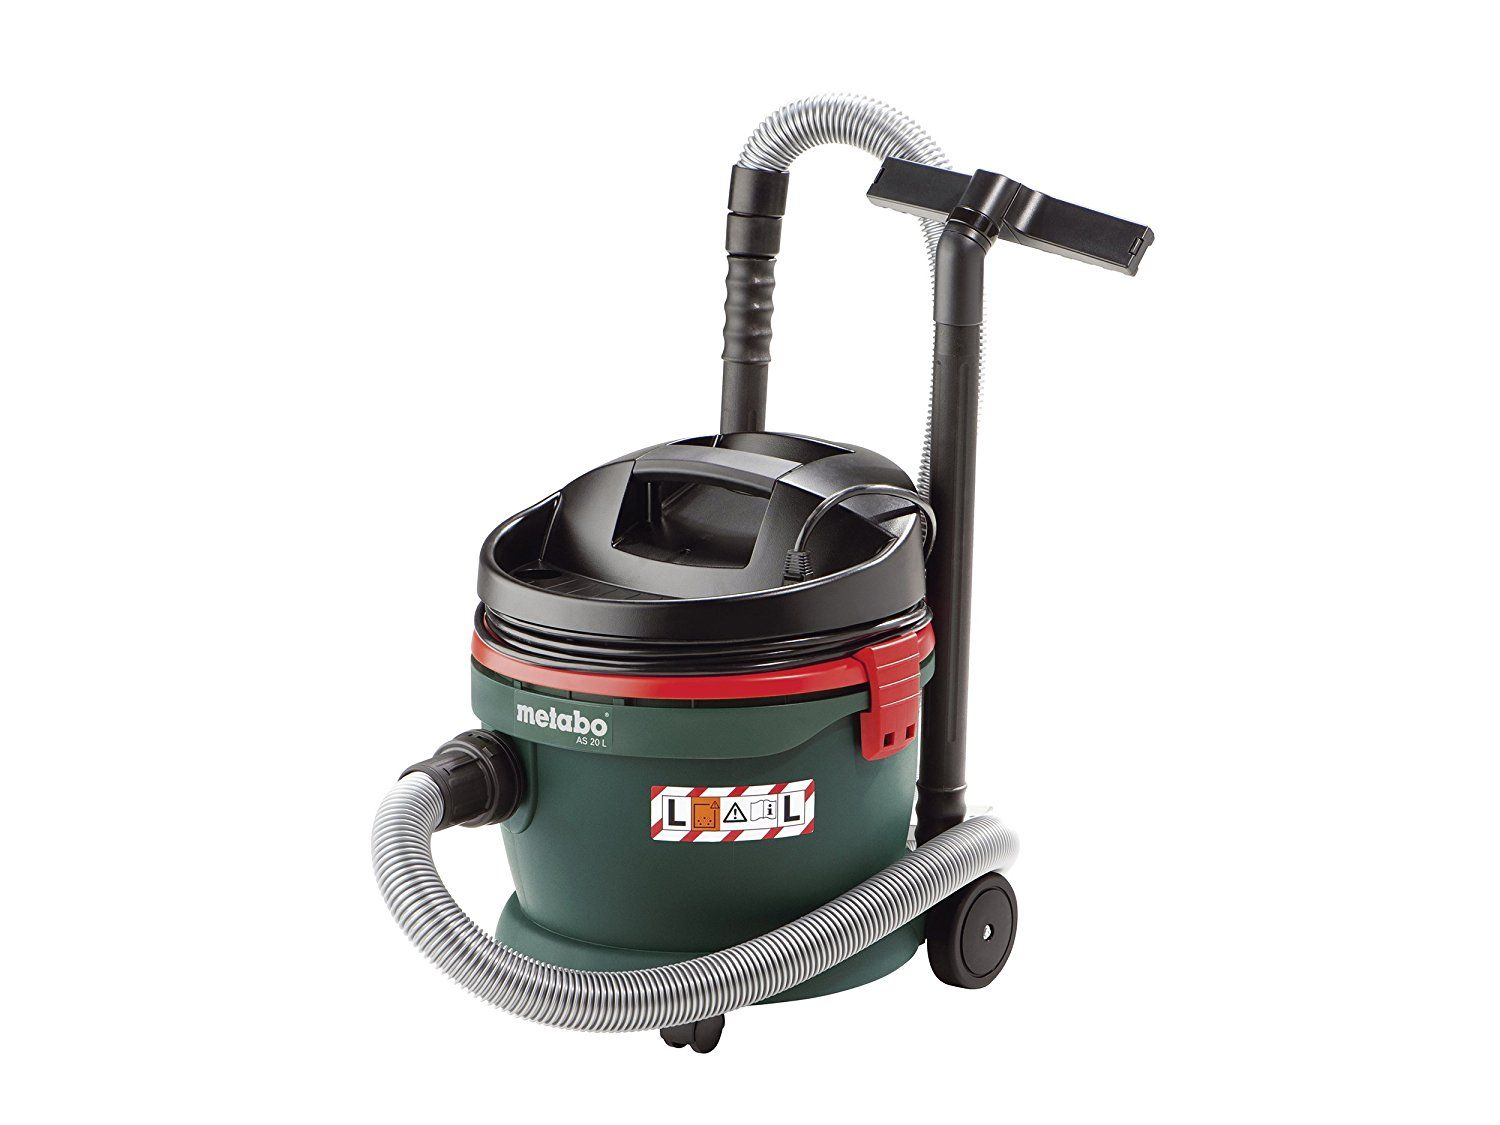 Metabo Mptas20 1200 W 240 V All Purpose Vacuum To View Further For This Article Visit The Image Link Mowersandoutdoorpowe Wet Dry Vacuum Vacuums Tv Decor